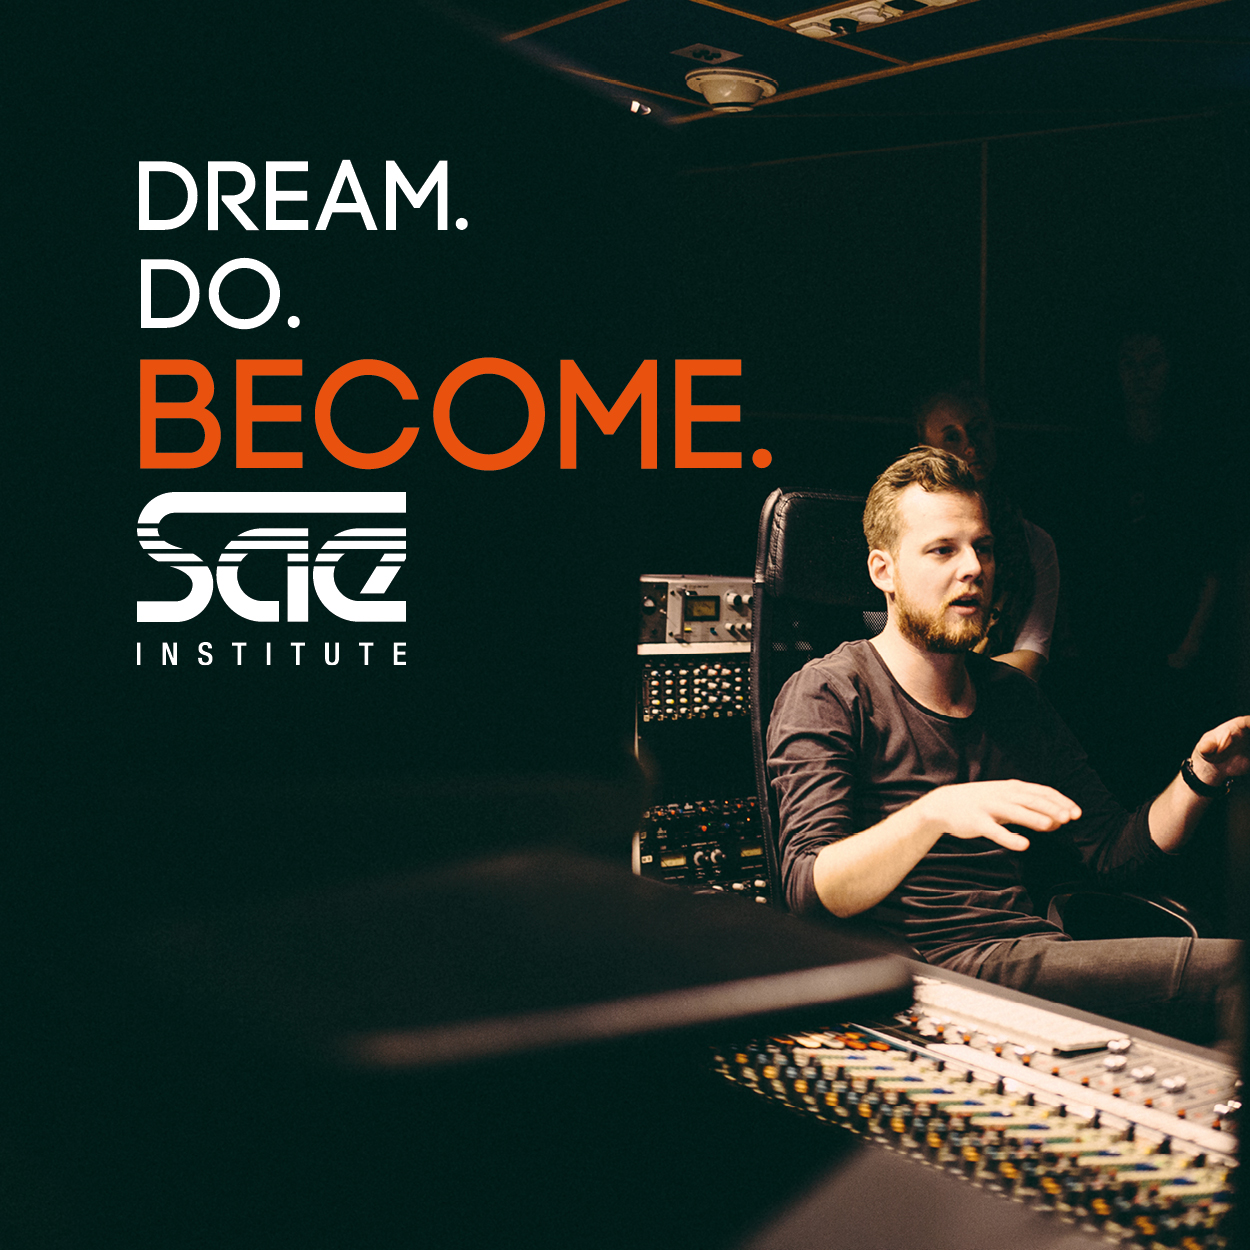 Dream. Do. Become.